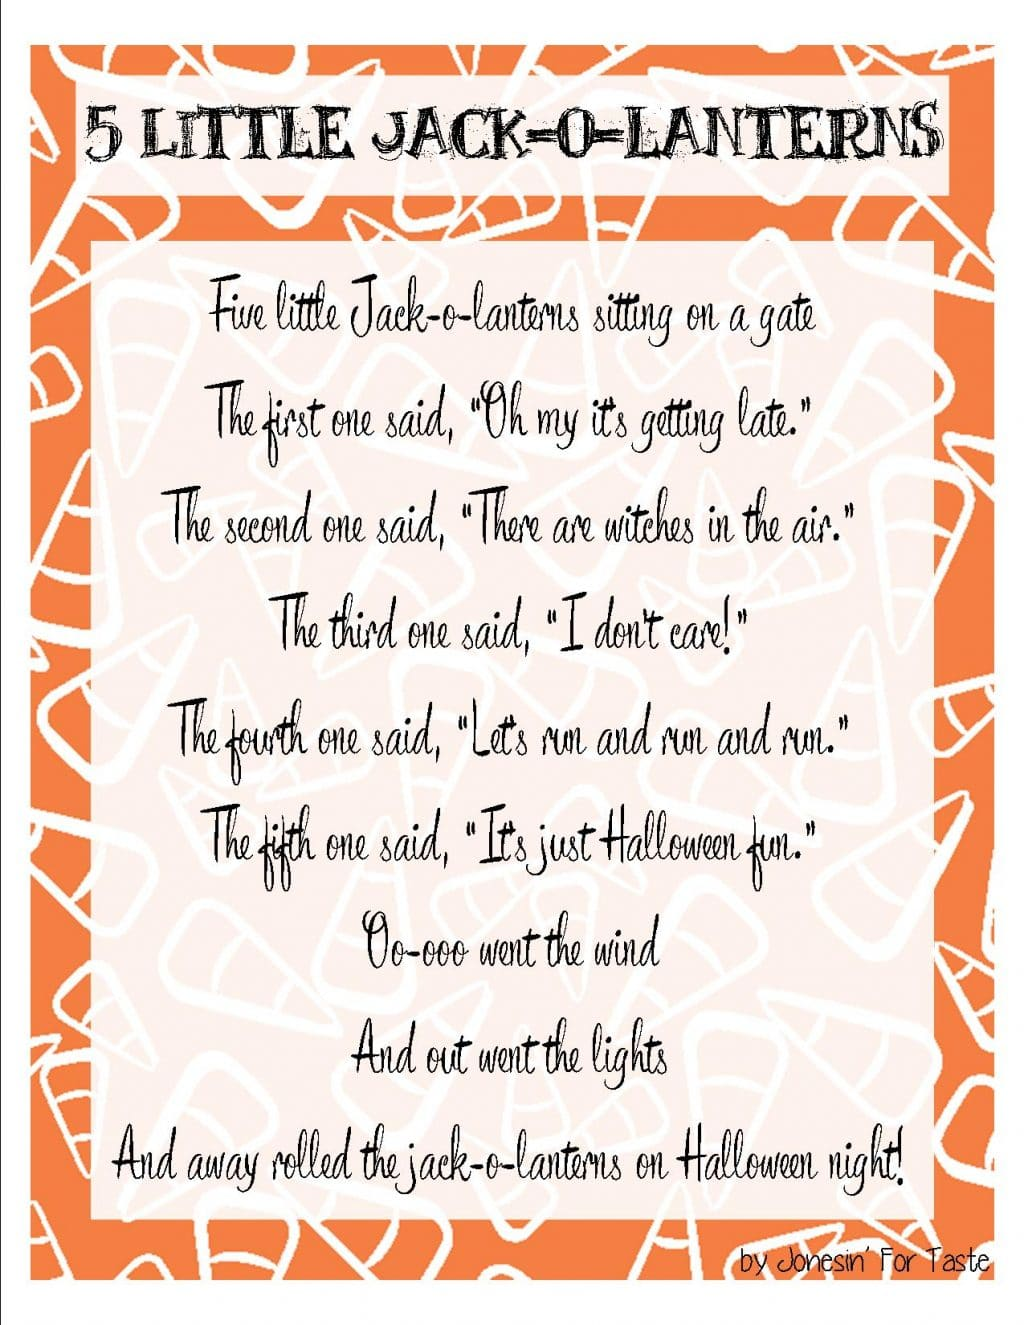 photograph relating to Five Little Pumpkins Poem Printable referred to as 5 Very little Jack-o-lanterns Halloween Printable